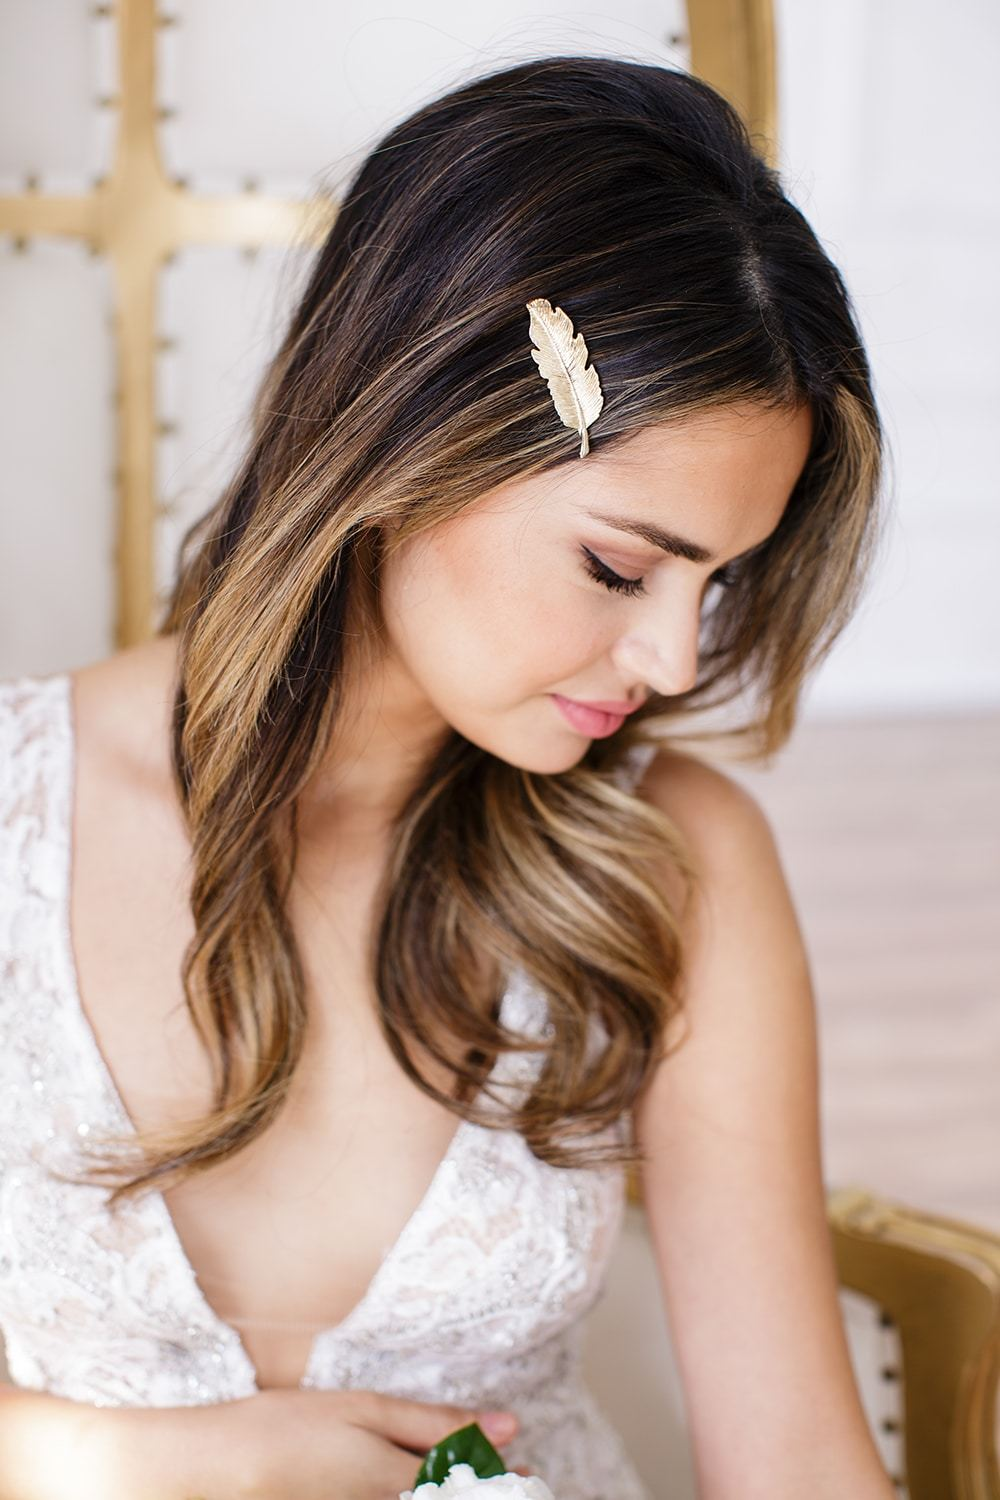 Hair pieces for your bridal party? We say yes!